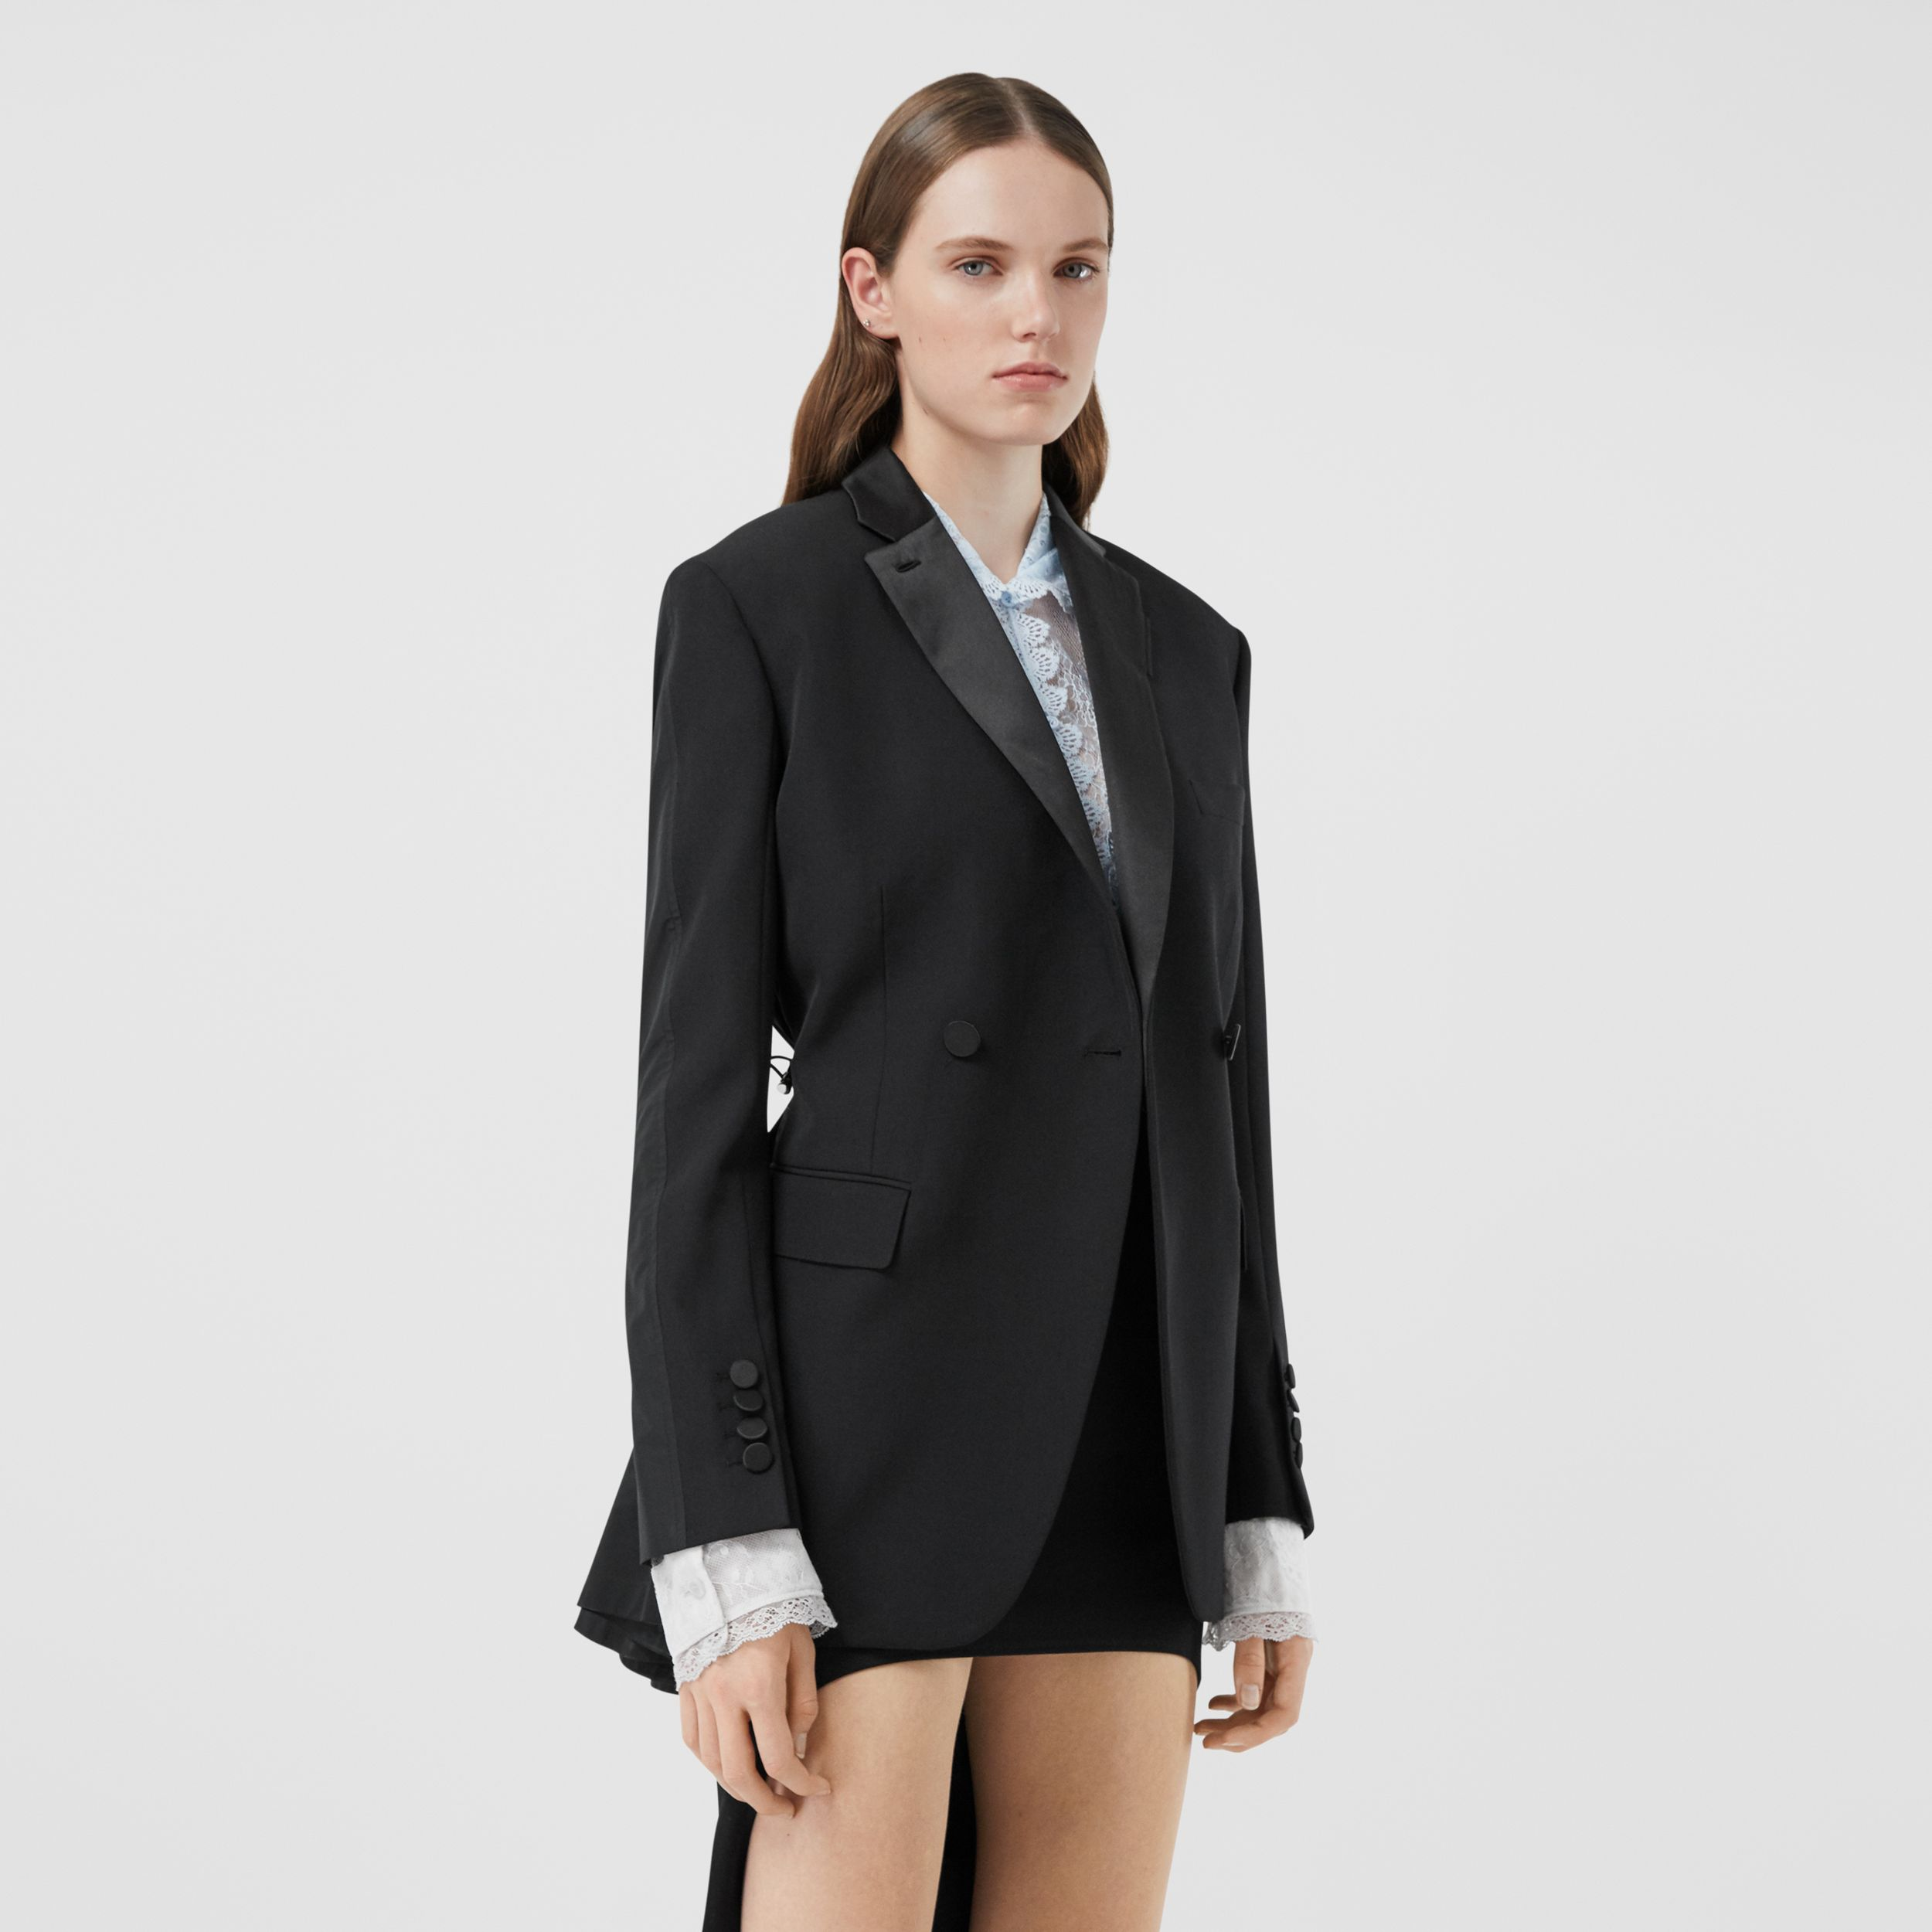 Cut-out Back Wool and Taffeta Tuxedo Jacket in Black - Women | Burberry Hong Kong S.A.R. - 1